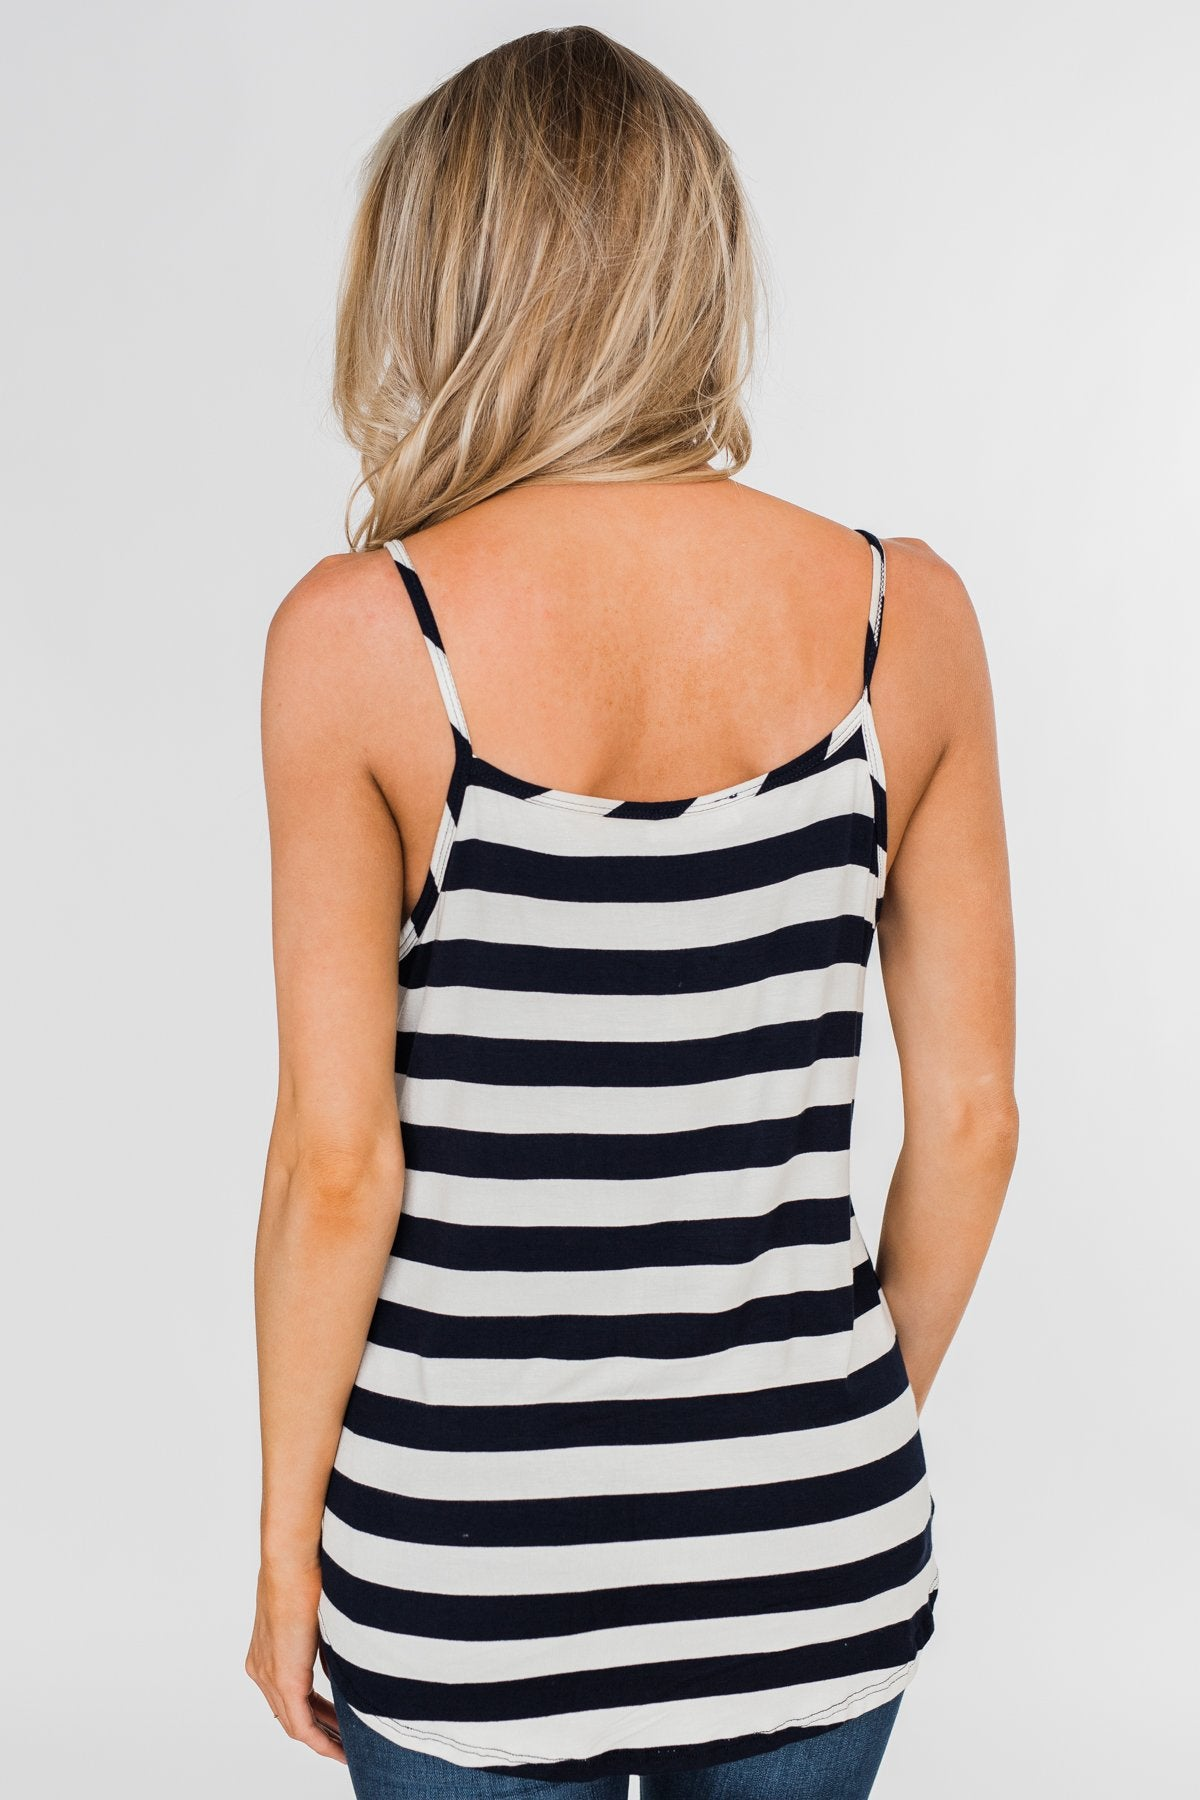 Give It To Me Striped Tank Top- Navy